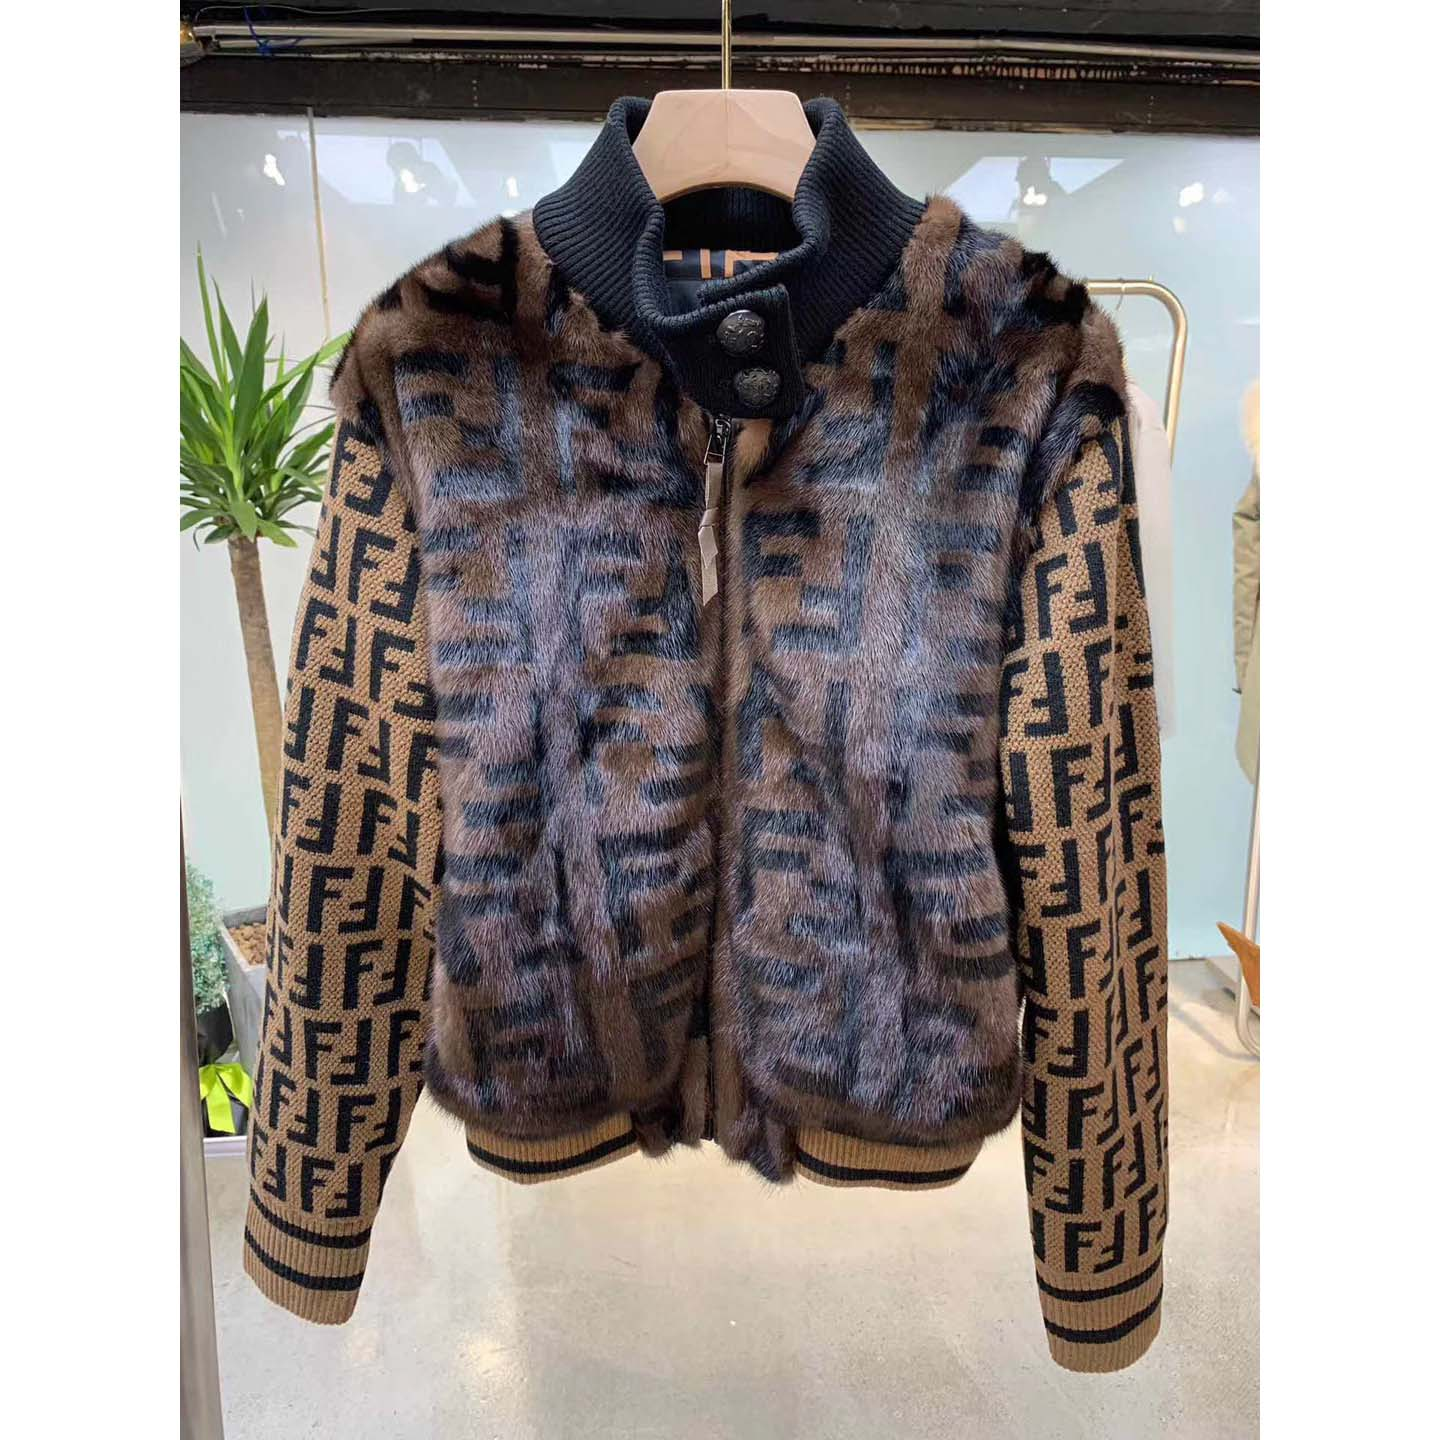 Knit and Inlaid Mink Fur Bomber Jacket - FashionBeast